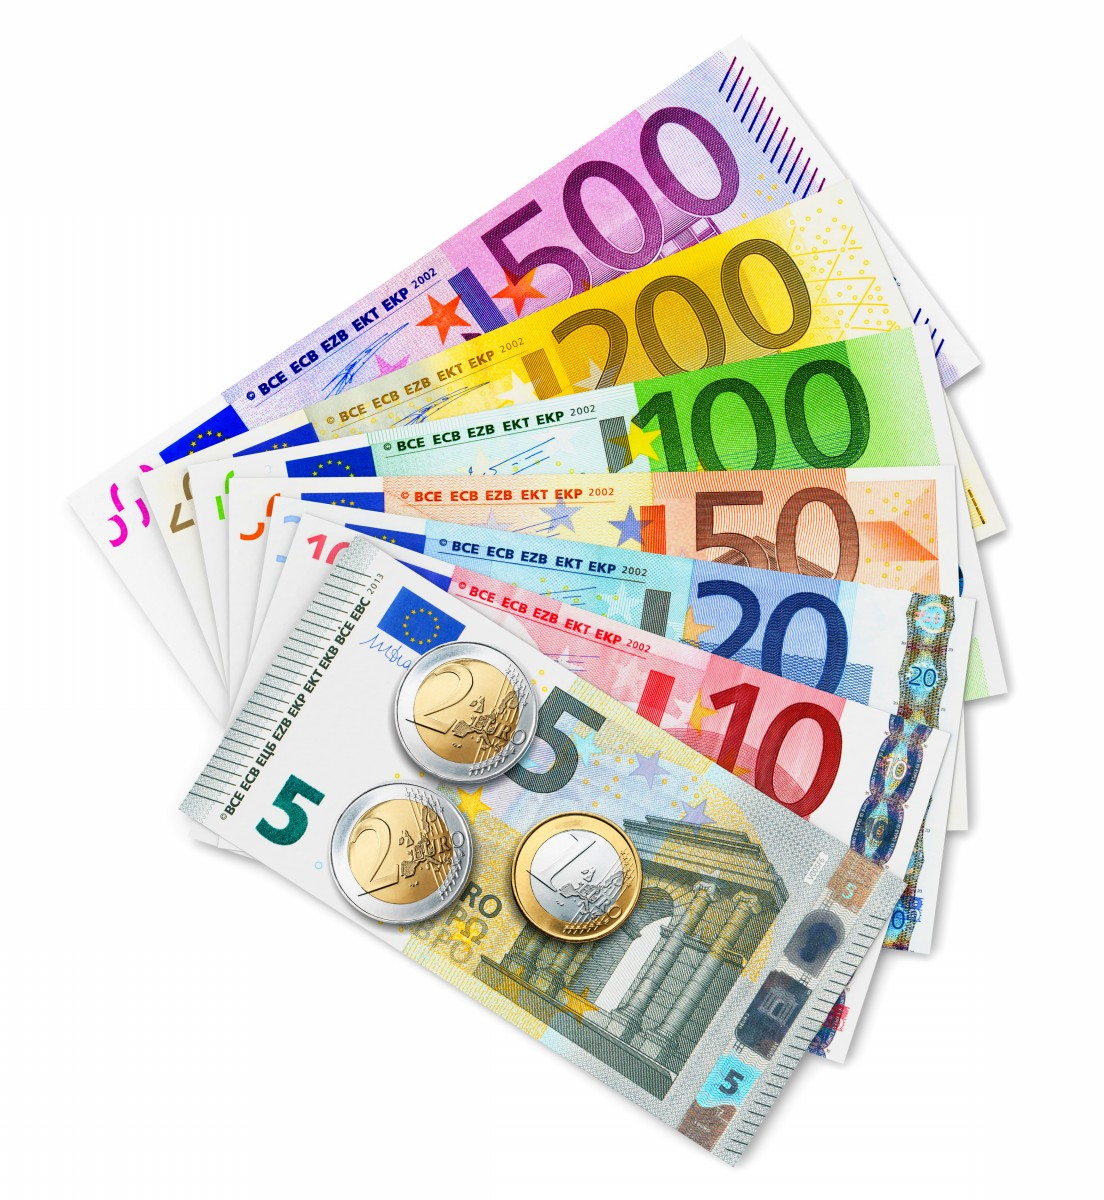 Image result for Euro banknotes